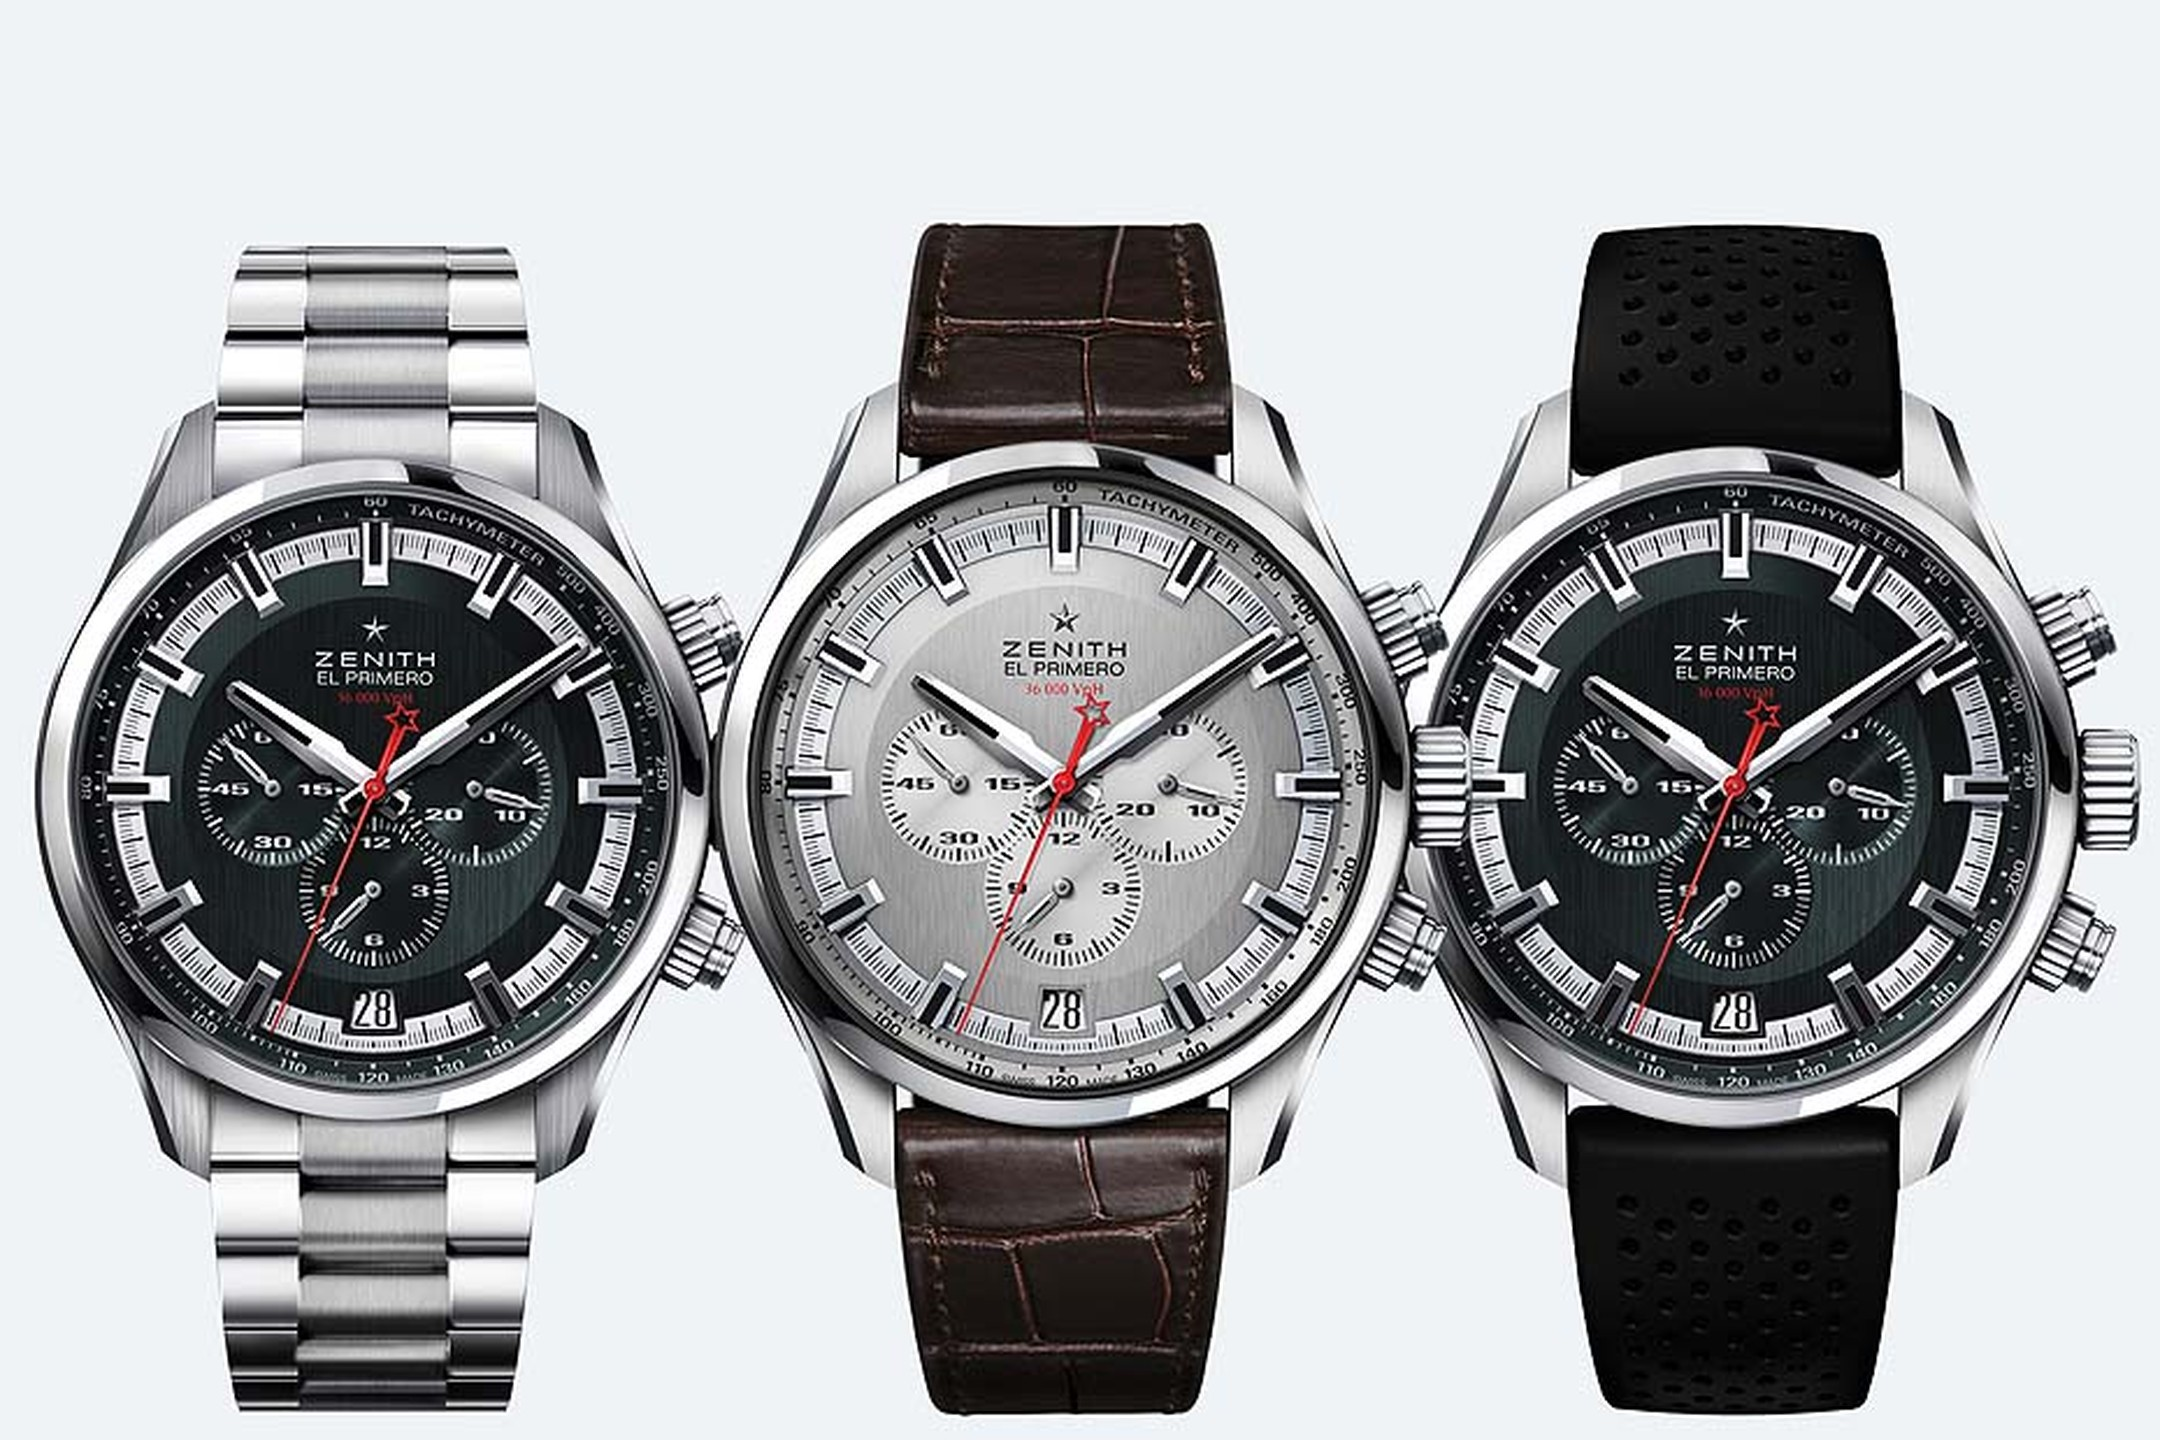 Three models of the new Zenith El Primero Sport chronograph presented at Baselworld 2015. The 45mm watches are presented on metal, leather or a rubber strap, and are water resistant to depths of 200 metres.